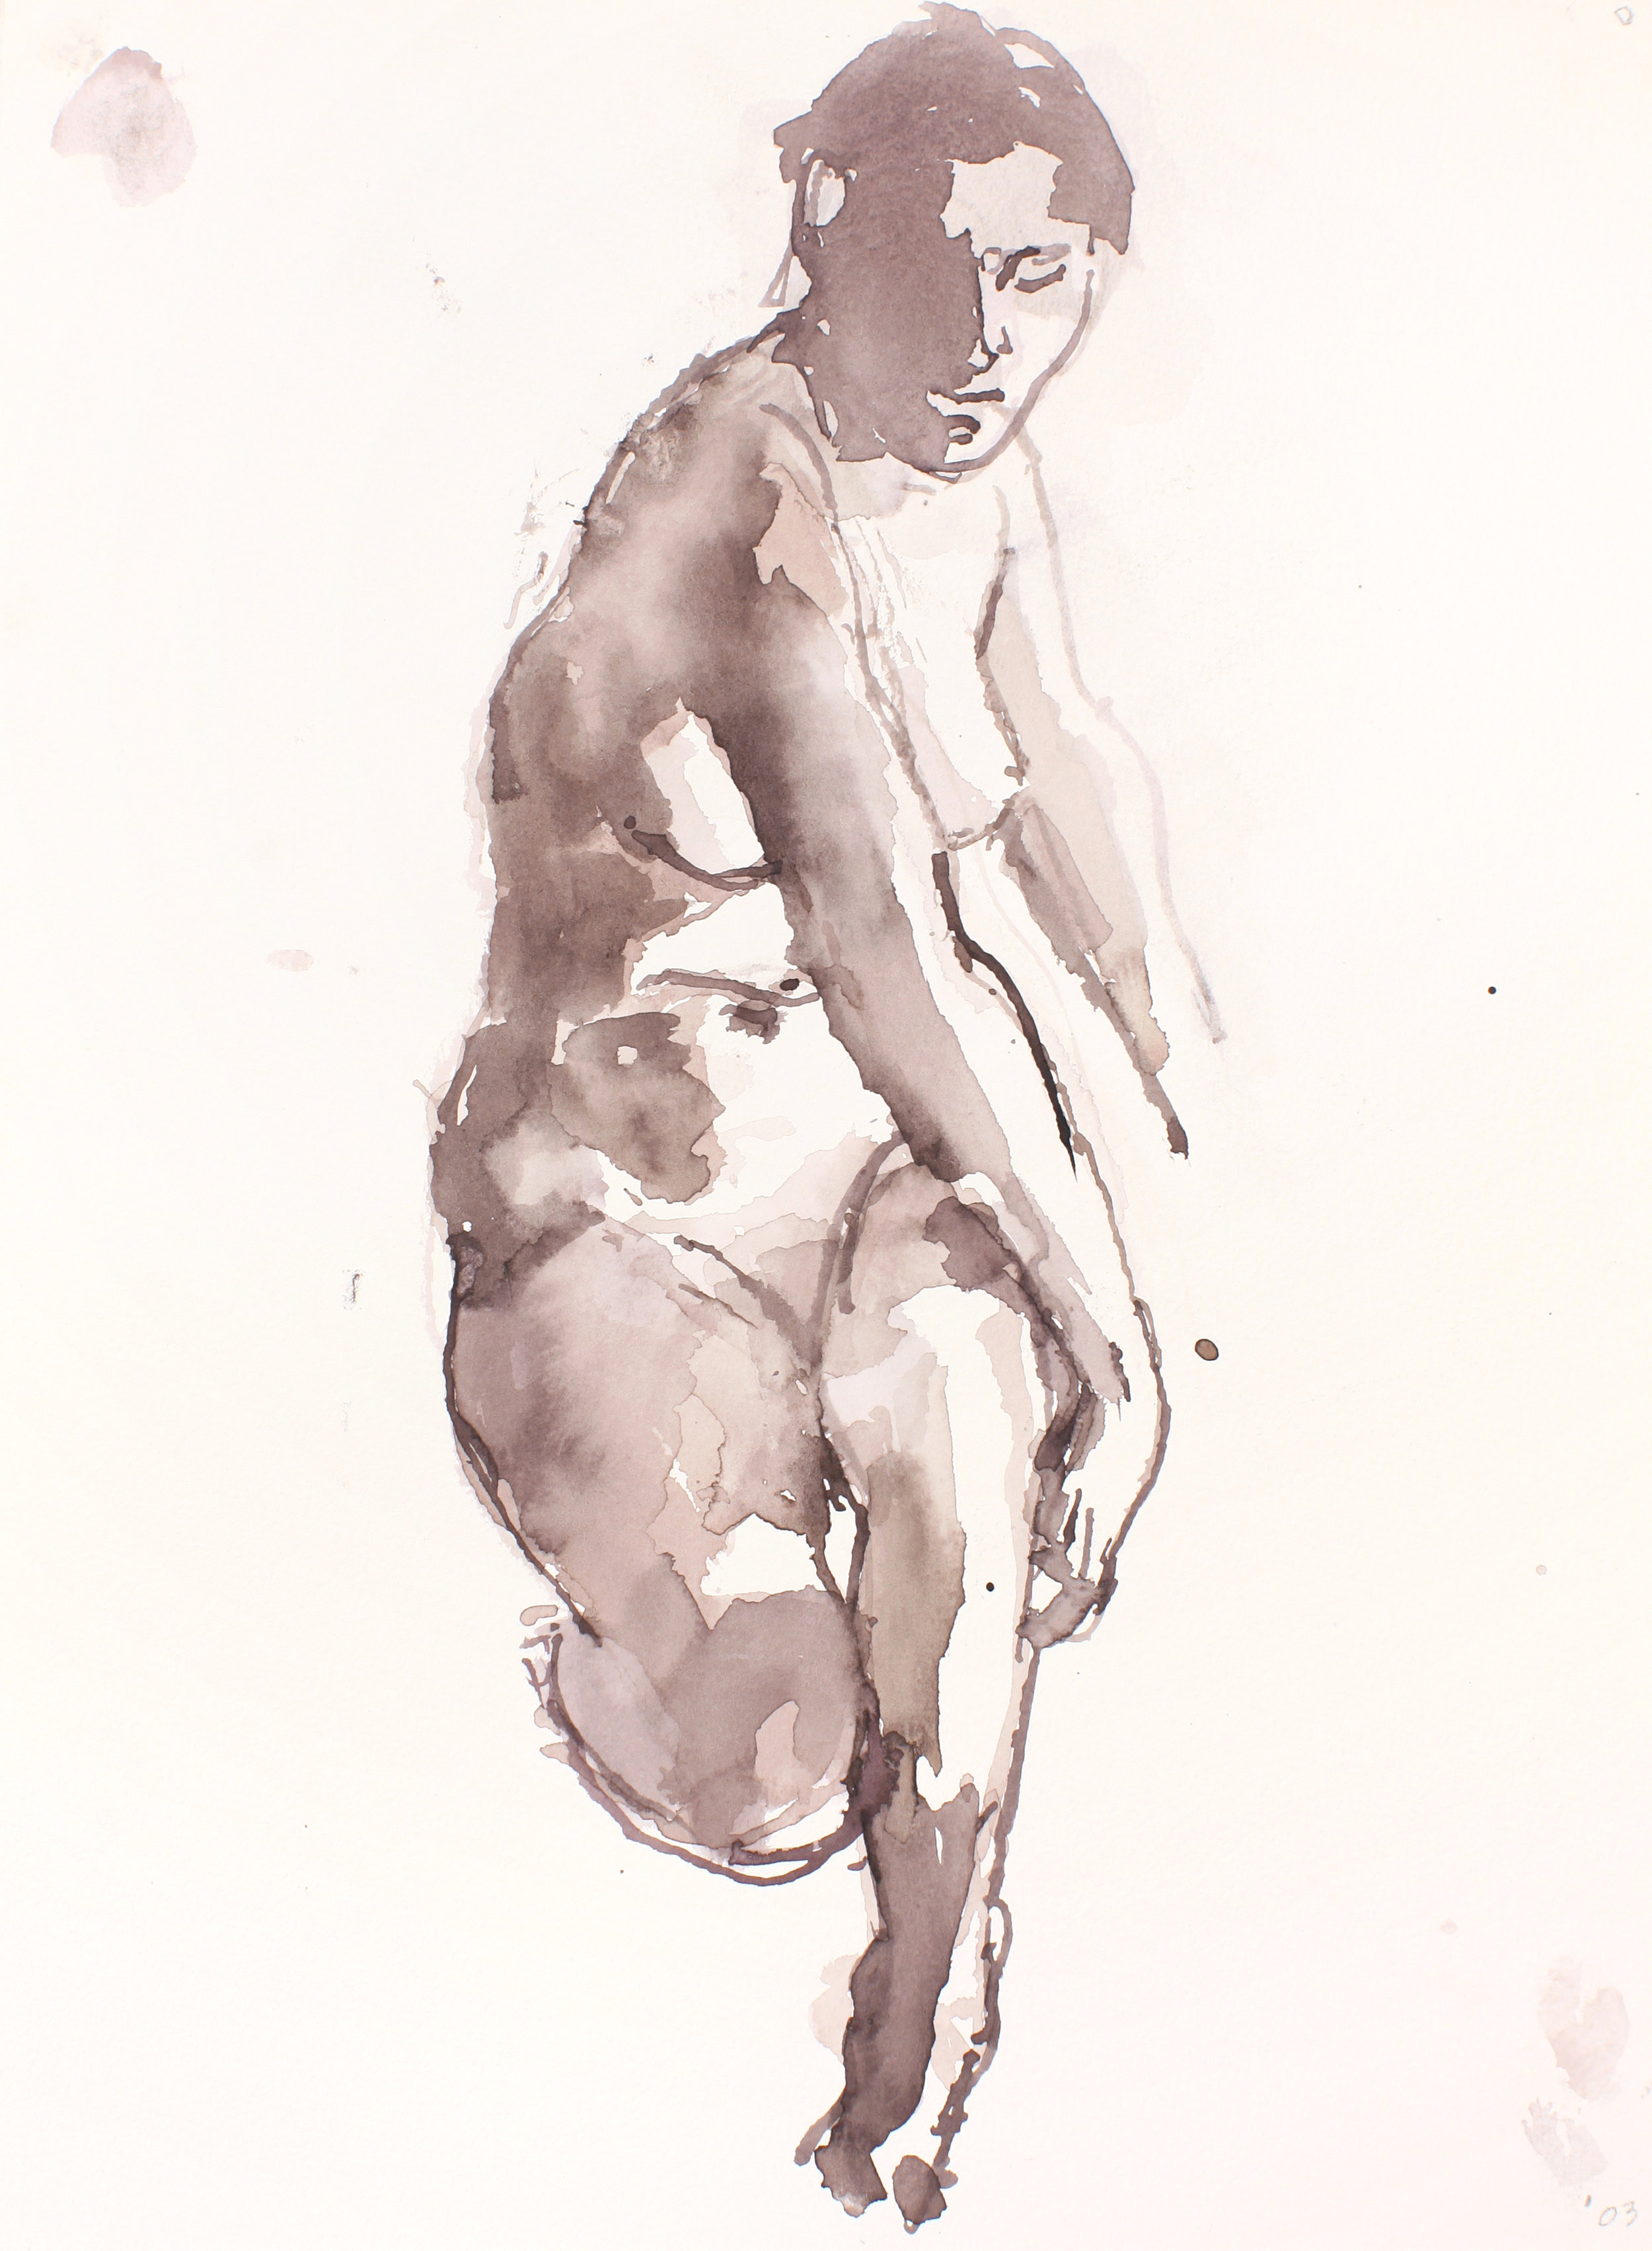 2003_Seated_Nude_with_Arms_at_Right_Side_watercolour_on_paper_15x11in_WPF234.jpg